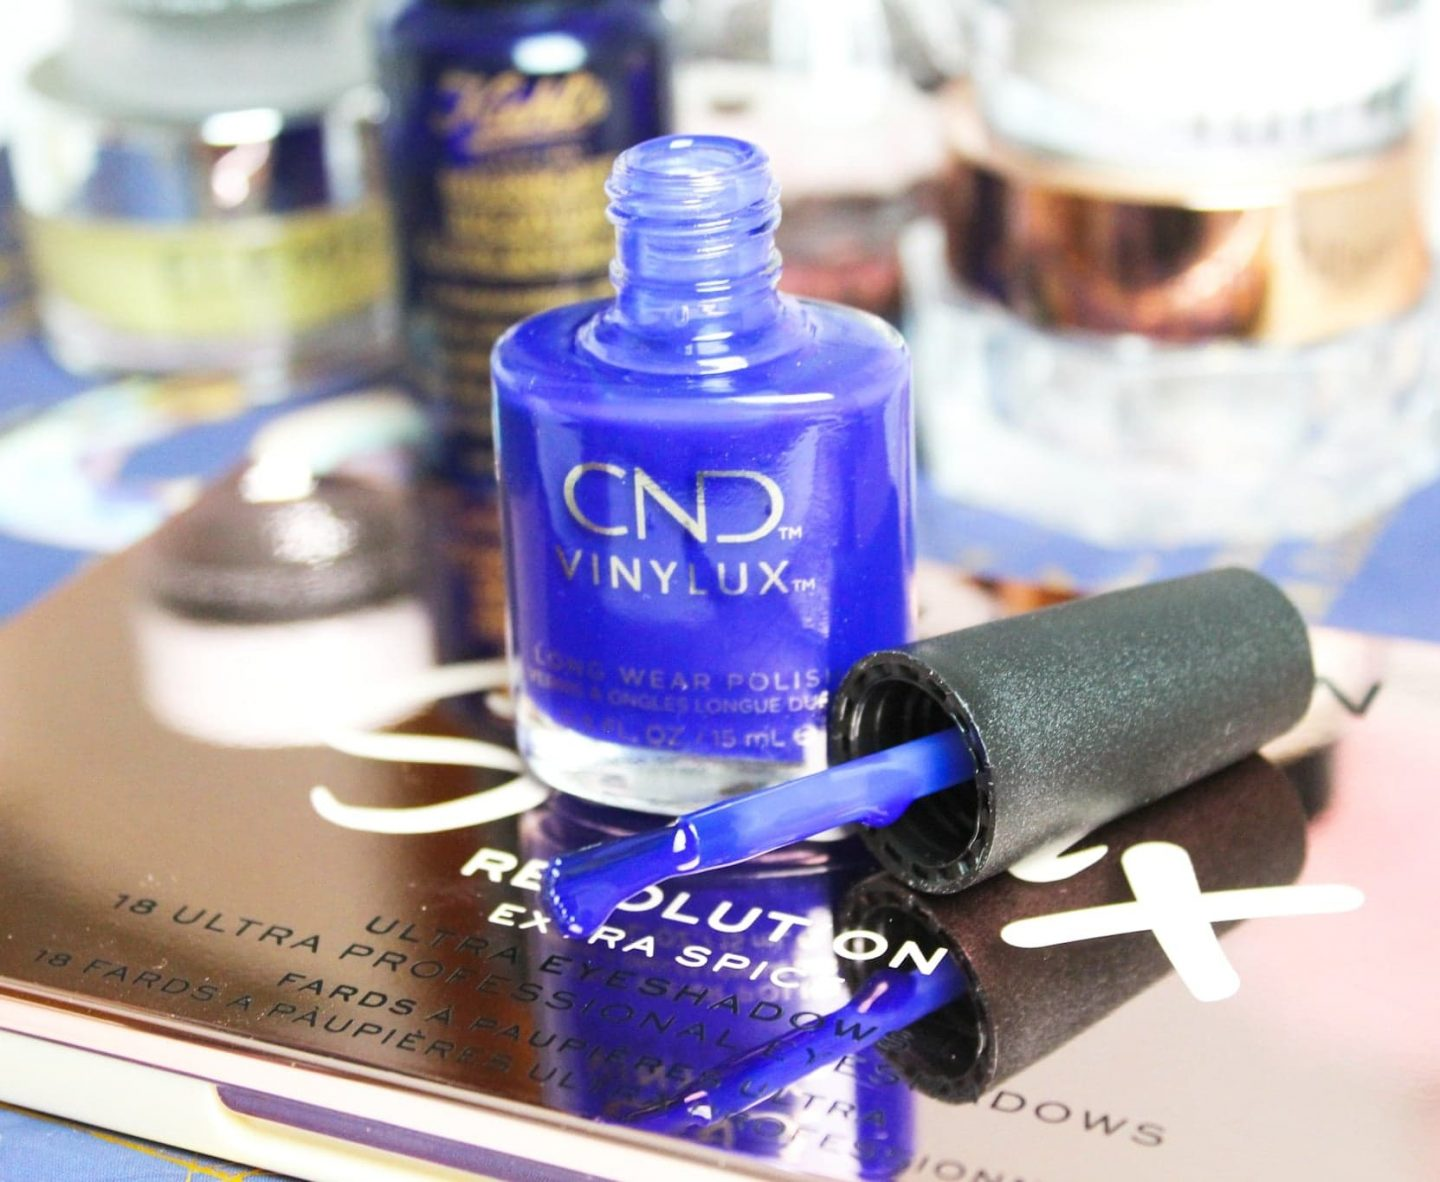 Cnd Vinylux Weekly Polish Wild Earth Collection The Beautiful Bluebird